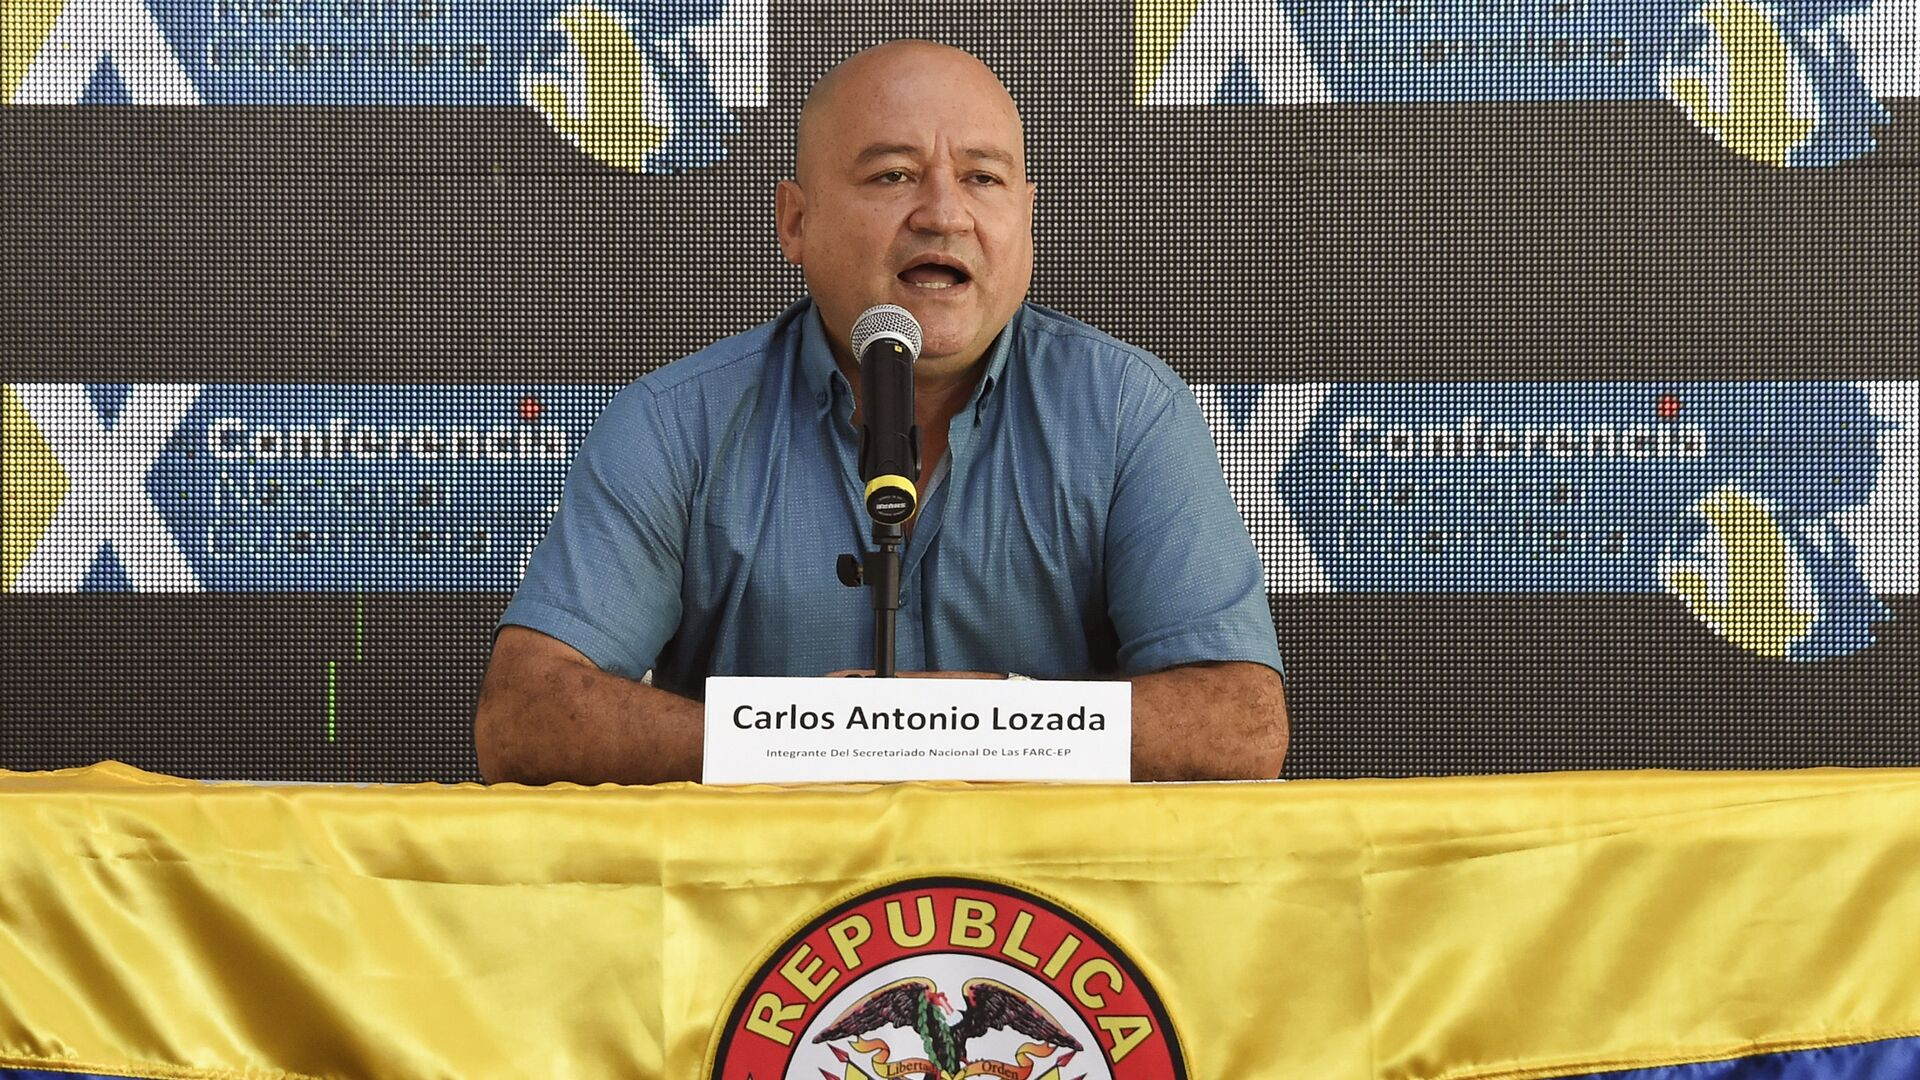 Commander Carlos Antonio Lozada, member of the direction of the Revolutionary Armed Forces of Colombia (FARC), speaks during the 10th National Guerrilla Conference in Llanos del Yari, Caqueta department, Colombia, on September - Sputnik Mundo, 1920, 19.04.2021